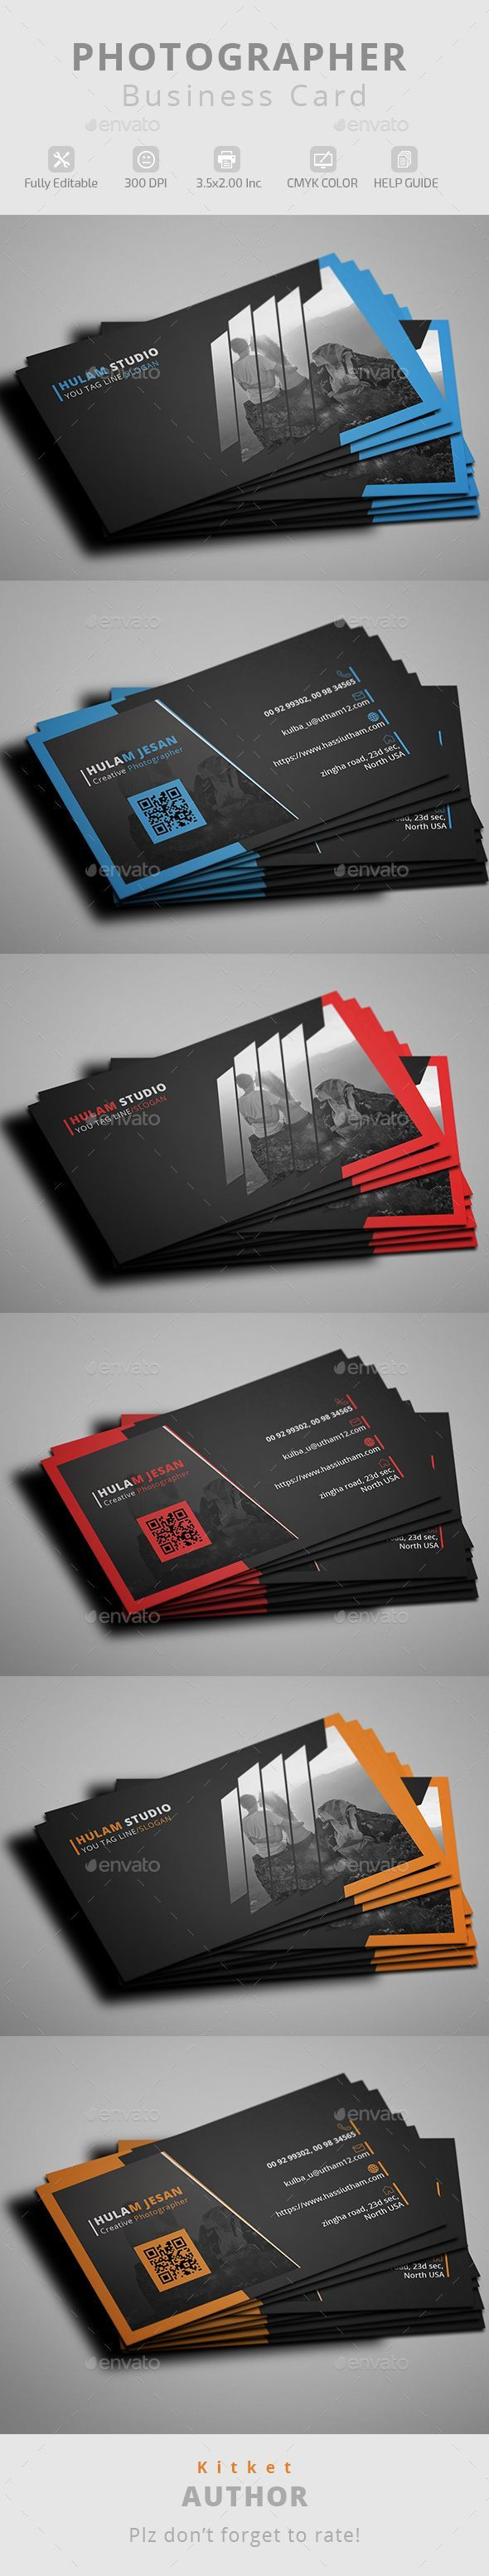 Photographer Business Card Template PSD #visitcard #design Download: http://graphicriver.net/item/photographer-business-card/13311116?ref=ksioks